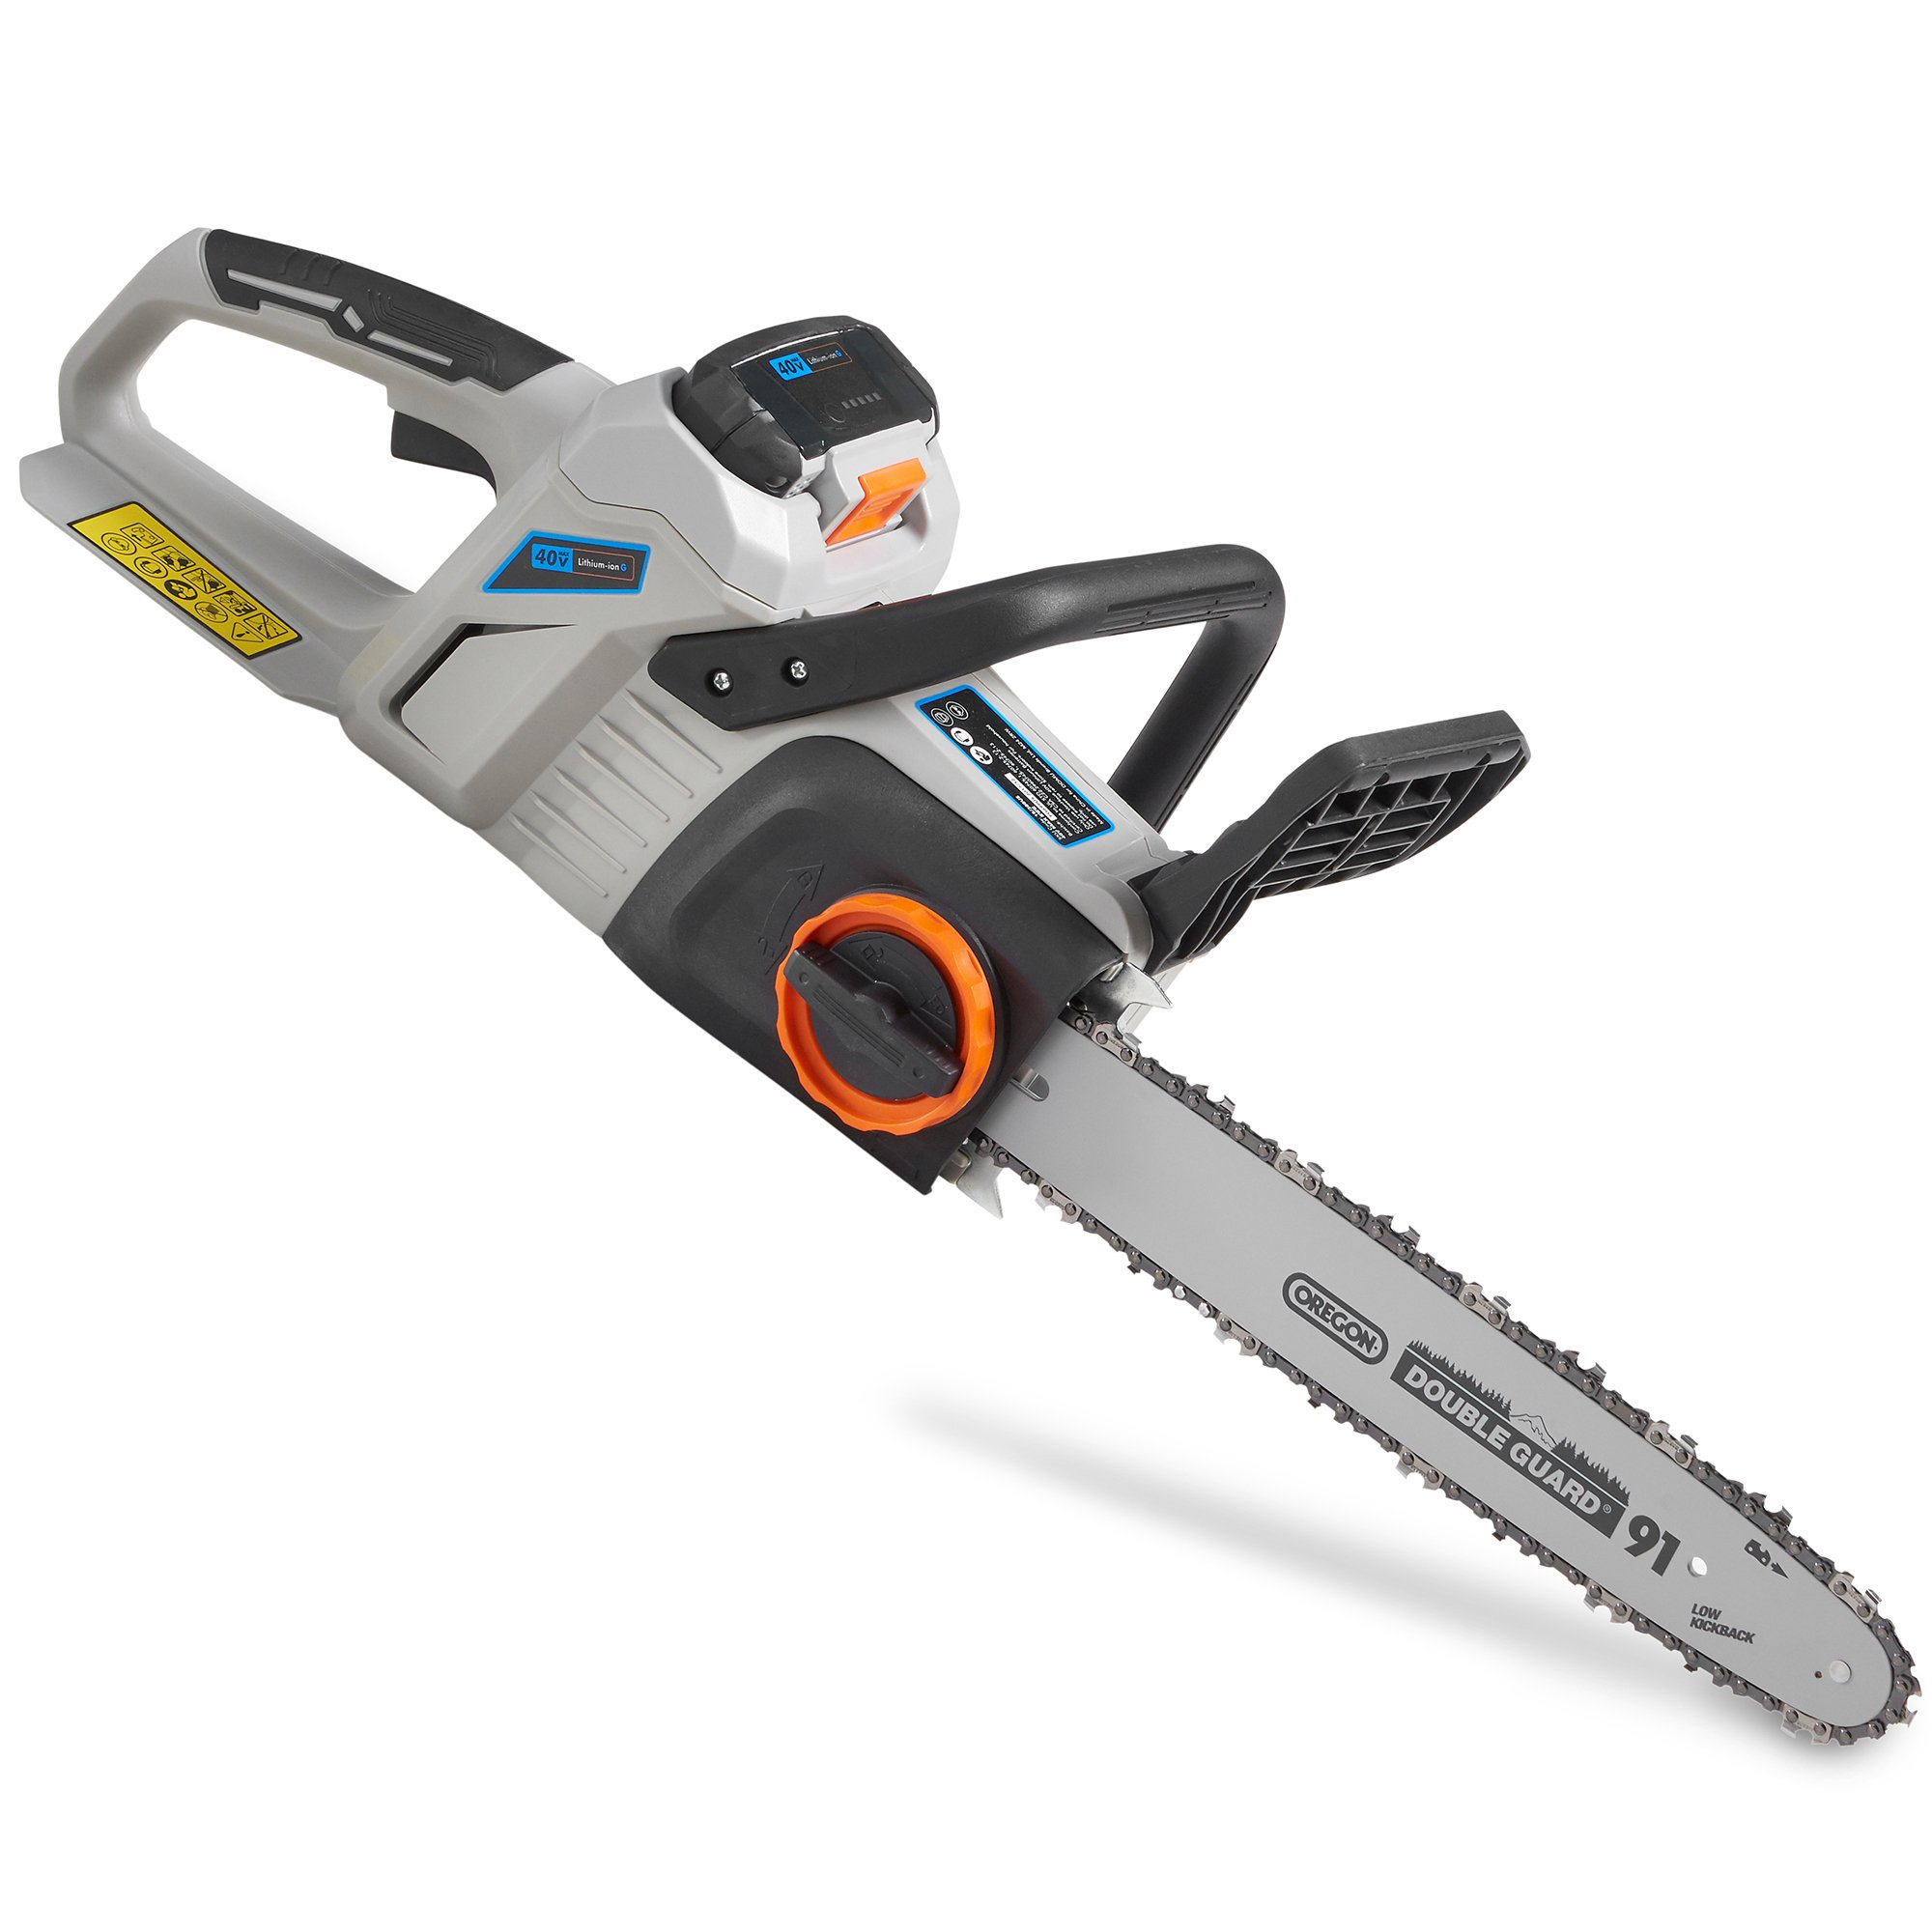 VonHaus 40V Max Cordless Chainsaw - Oregon Chain for Cutting Wood with Battery Included - Kickback Brake Handle - Lightweight Comfort Grip Handle - Part of the 40V Max Lithium-ion G Range by VonHaus